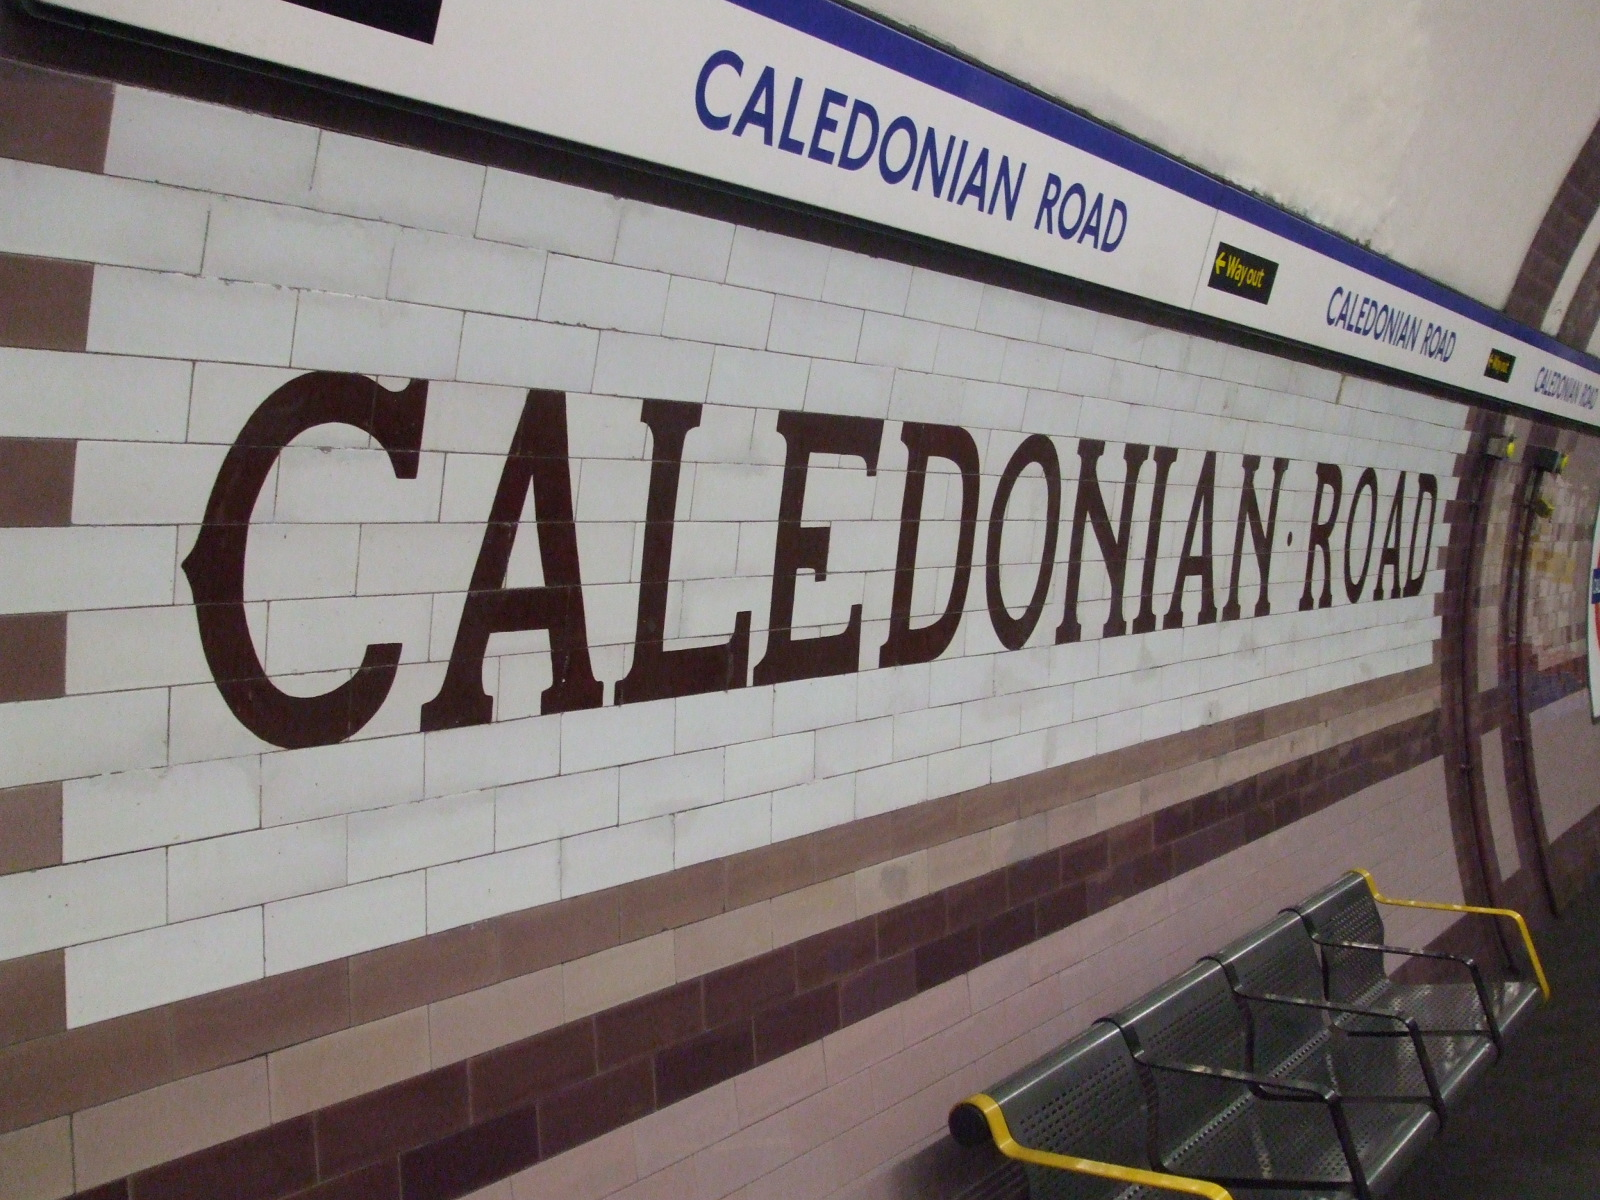 Caledonian Road station tiling